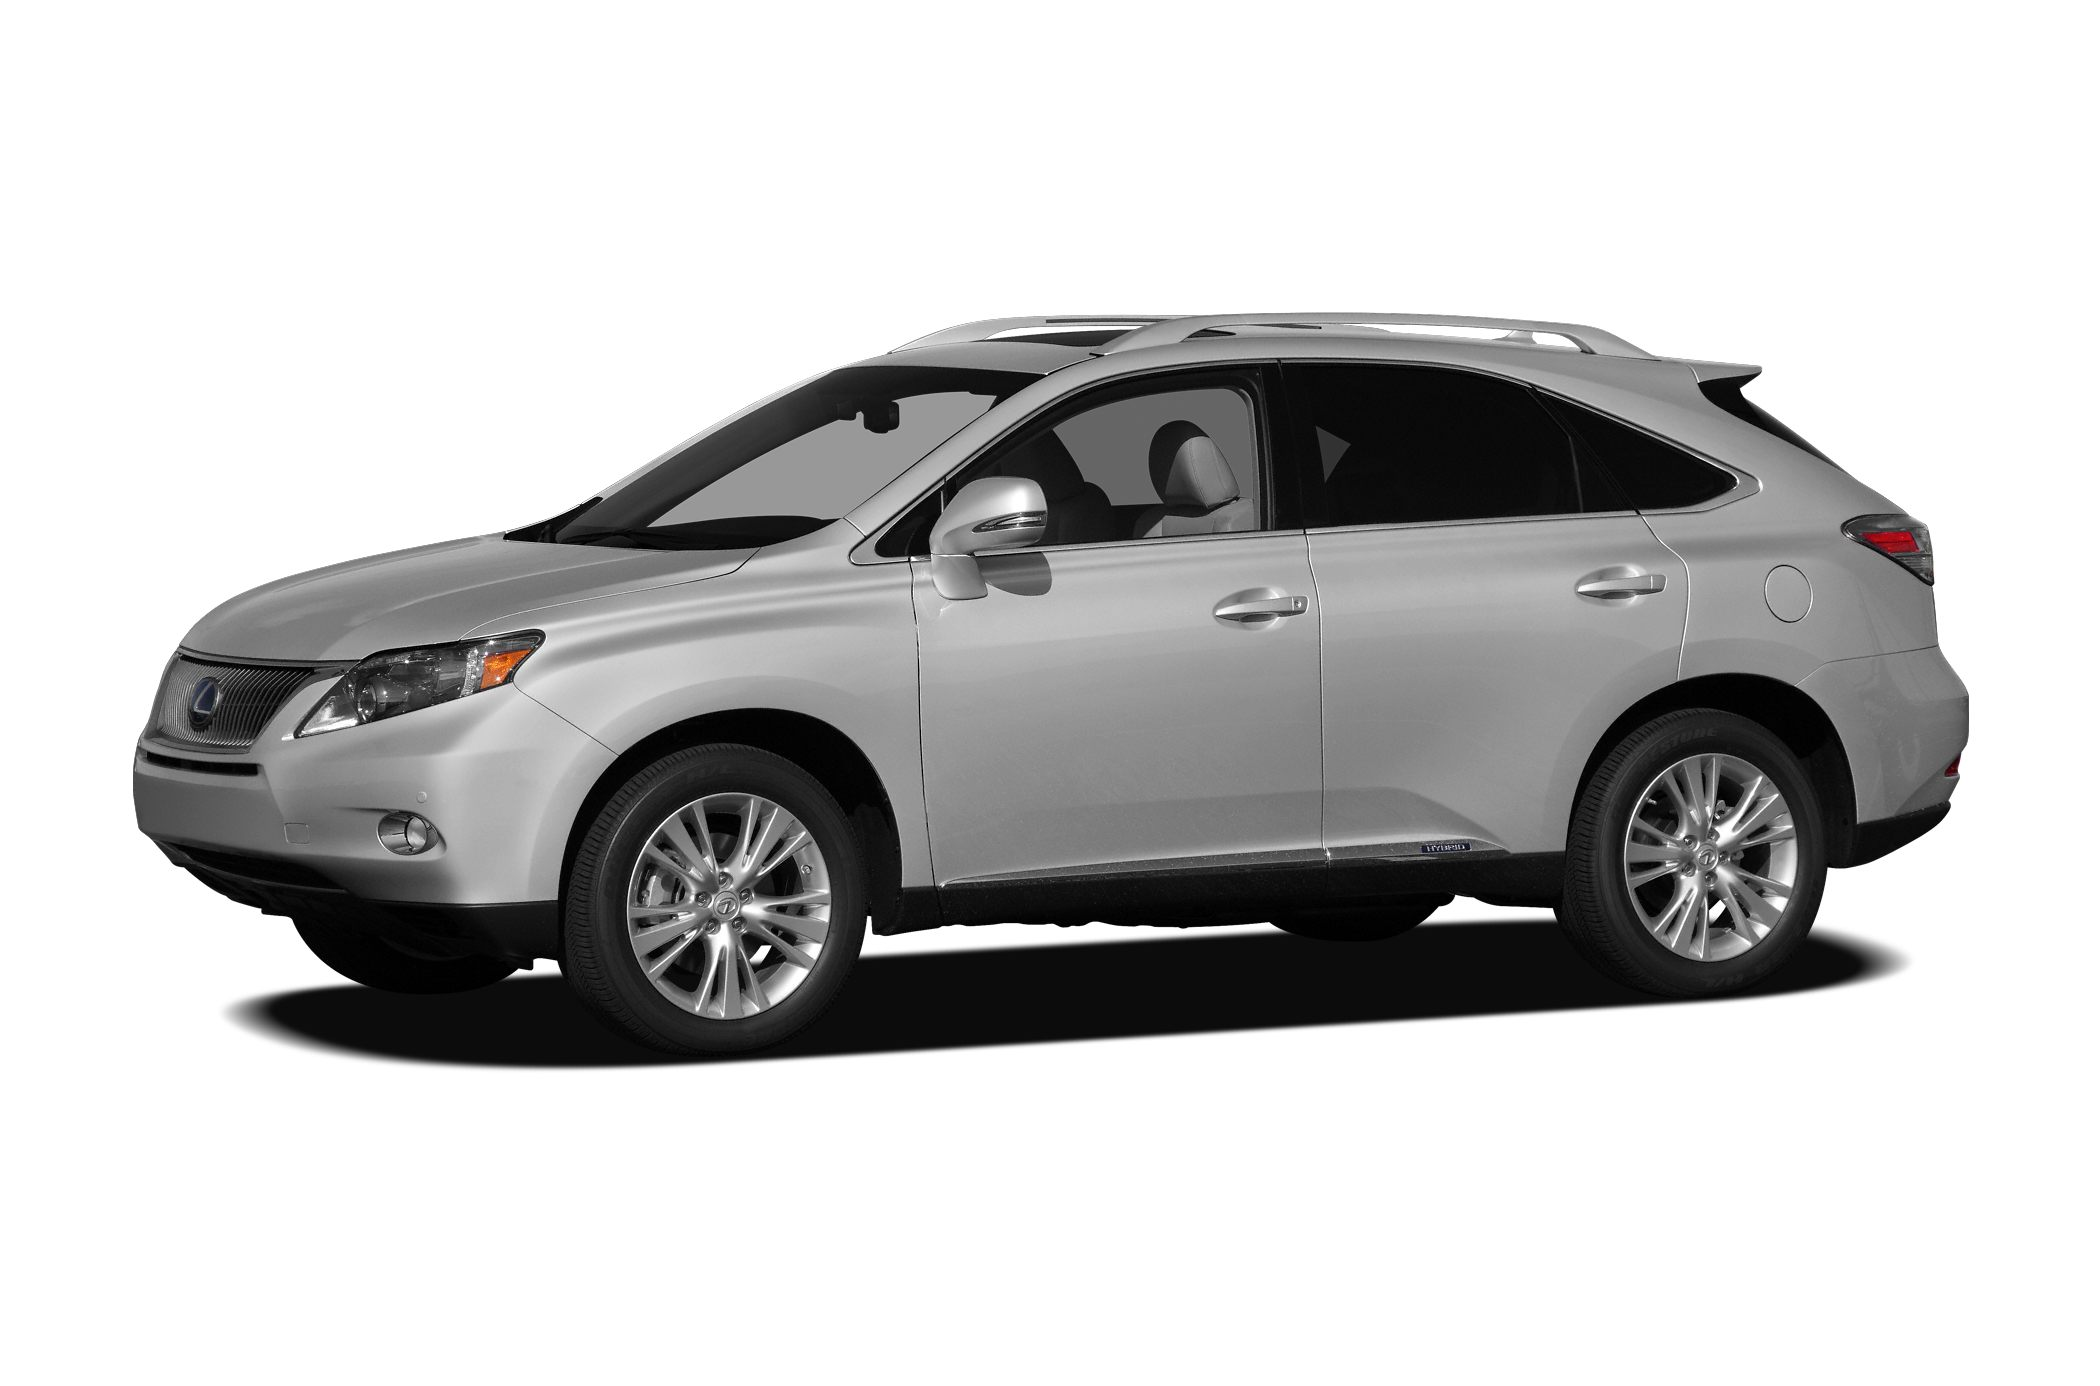 2010 Lexus RX 450h SUV for sale in Pittsburgh for $0 with 75,985 miles